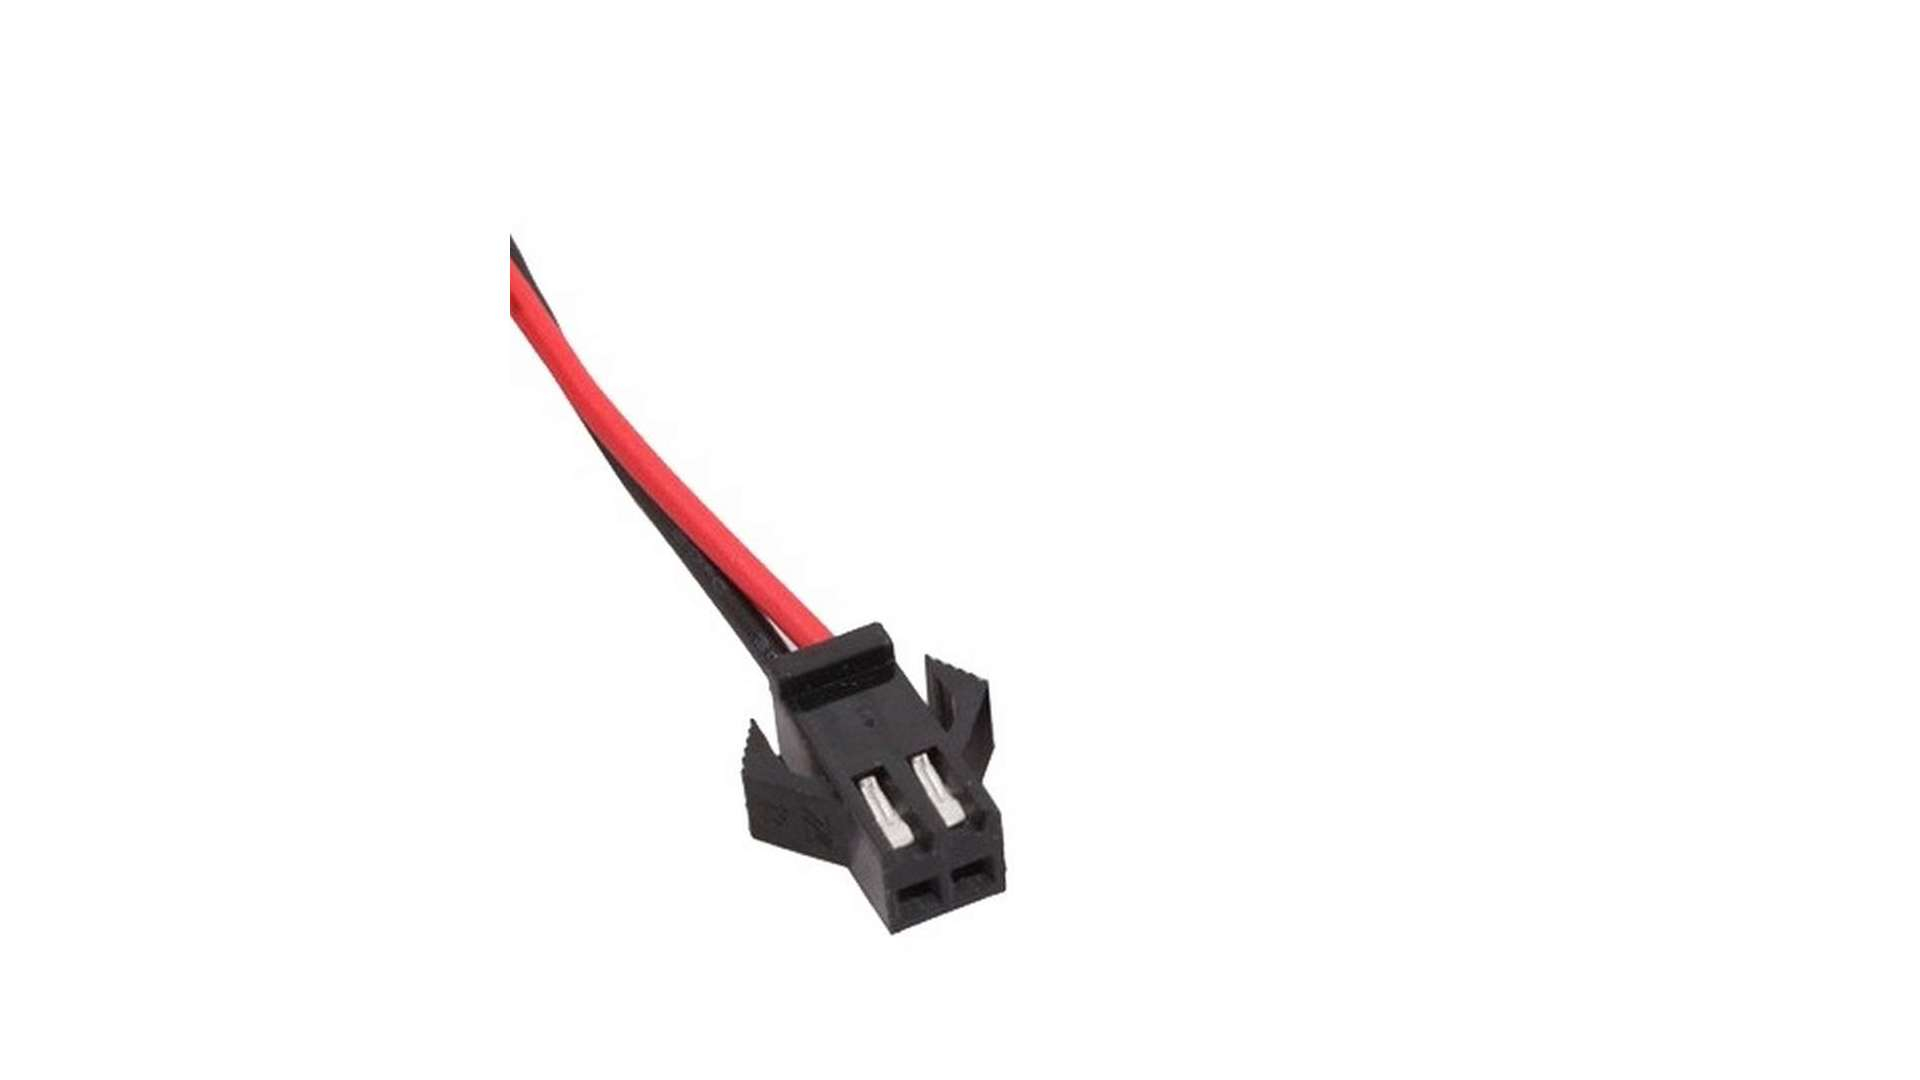 2-PIN wired (15cm) LED plug